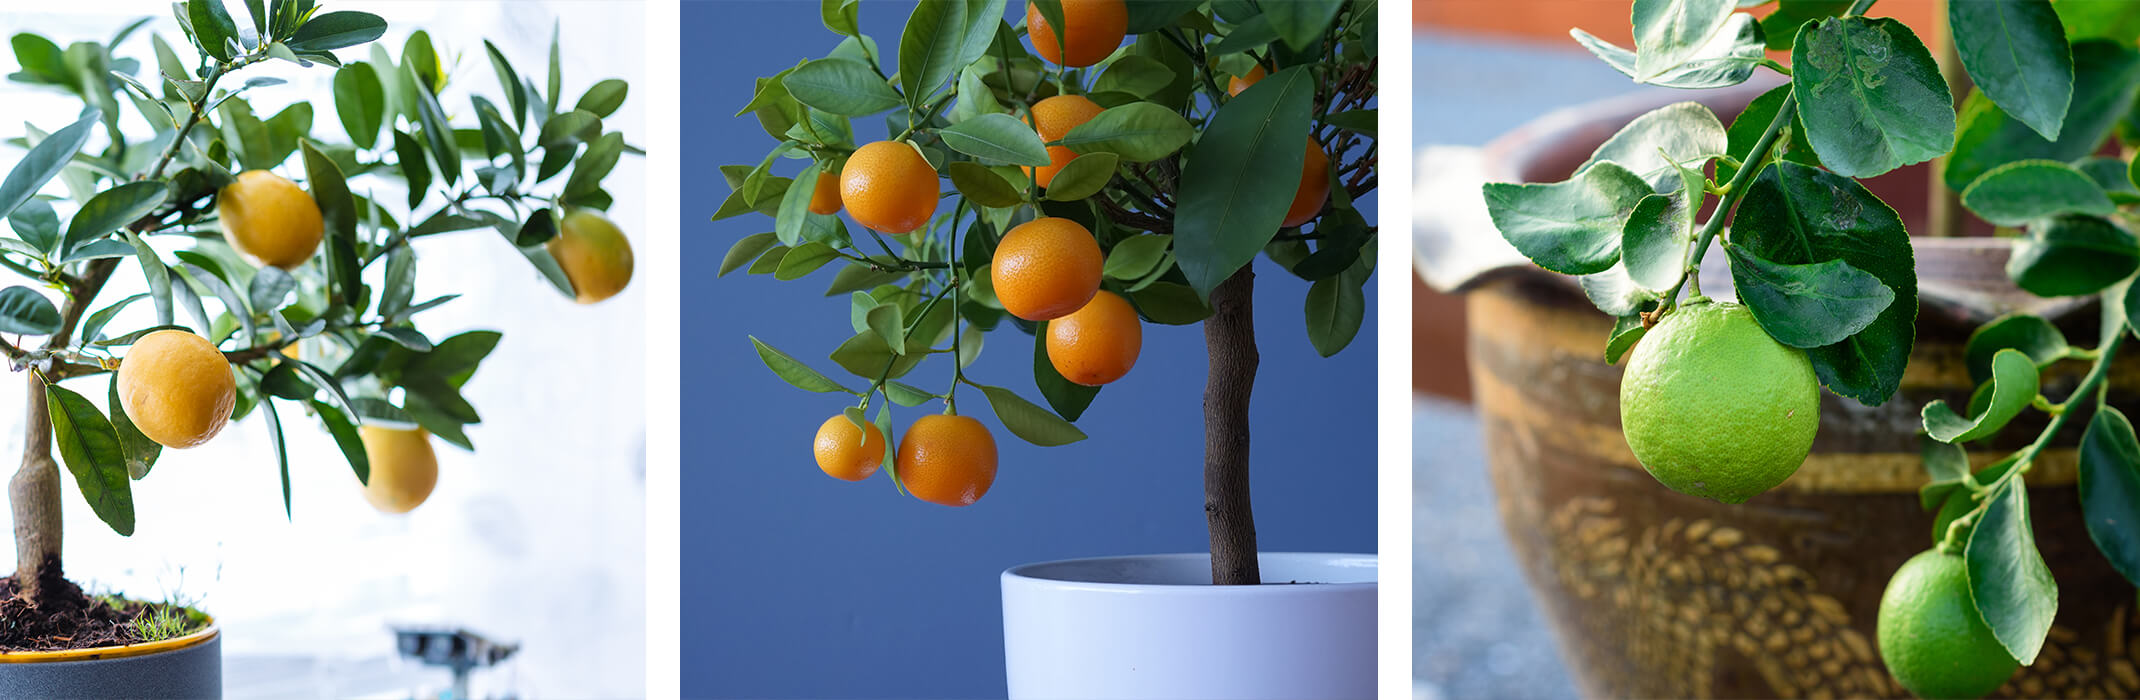 3 images: a potted dwarf lemon tree, a potted dwarf orange tree, and a potted dwarf lime tree